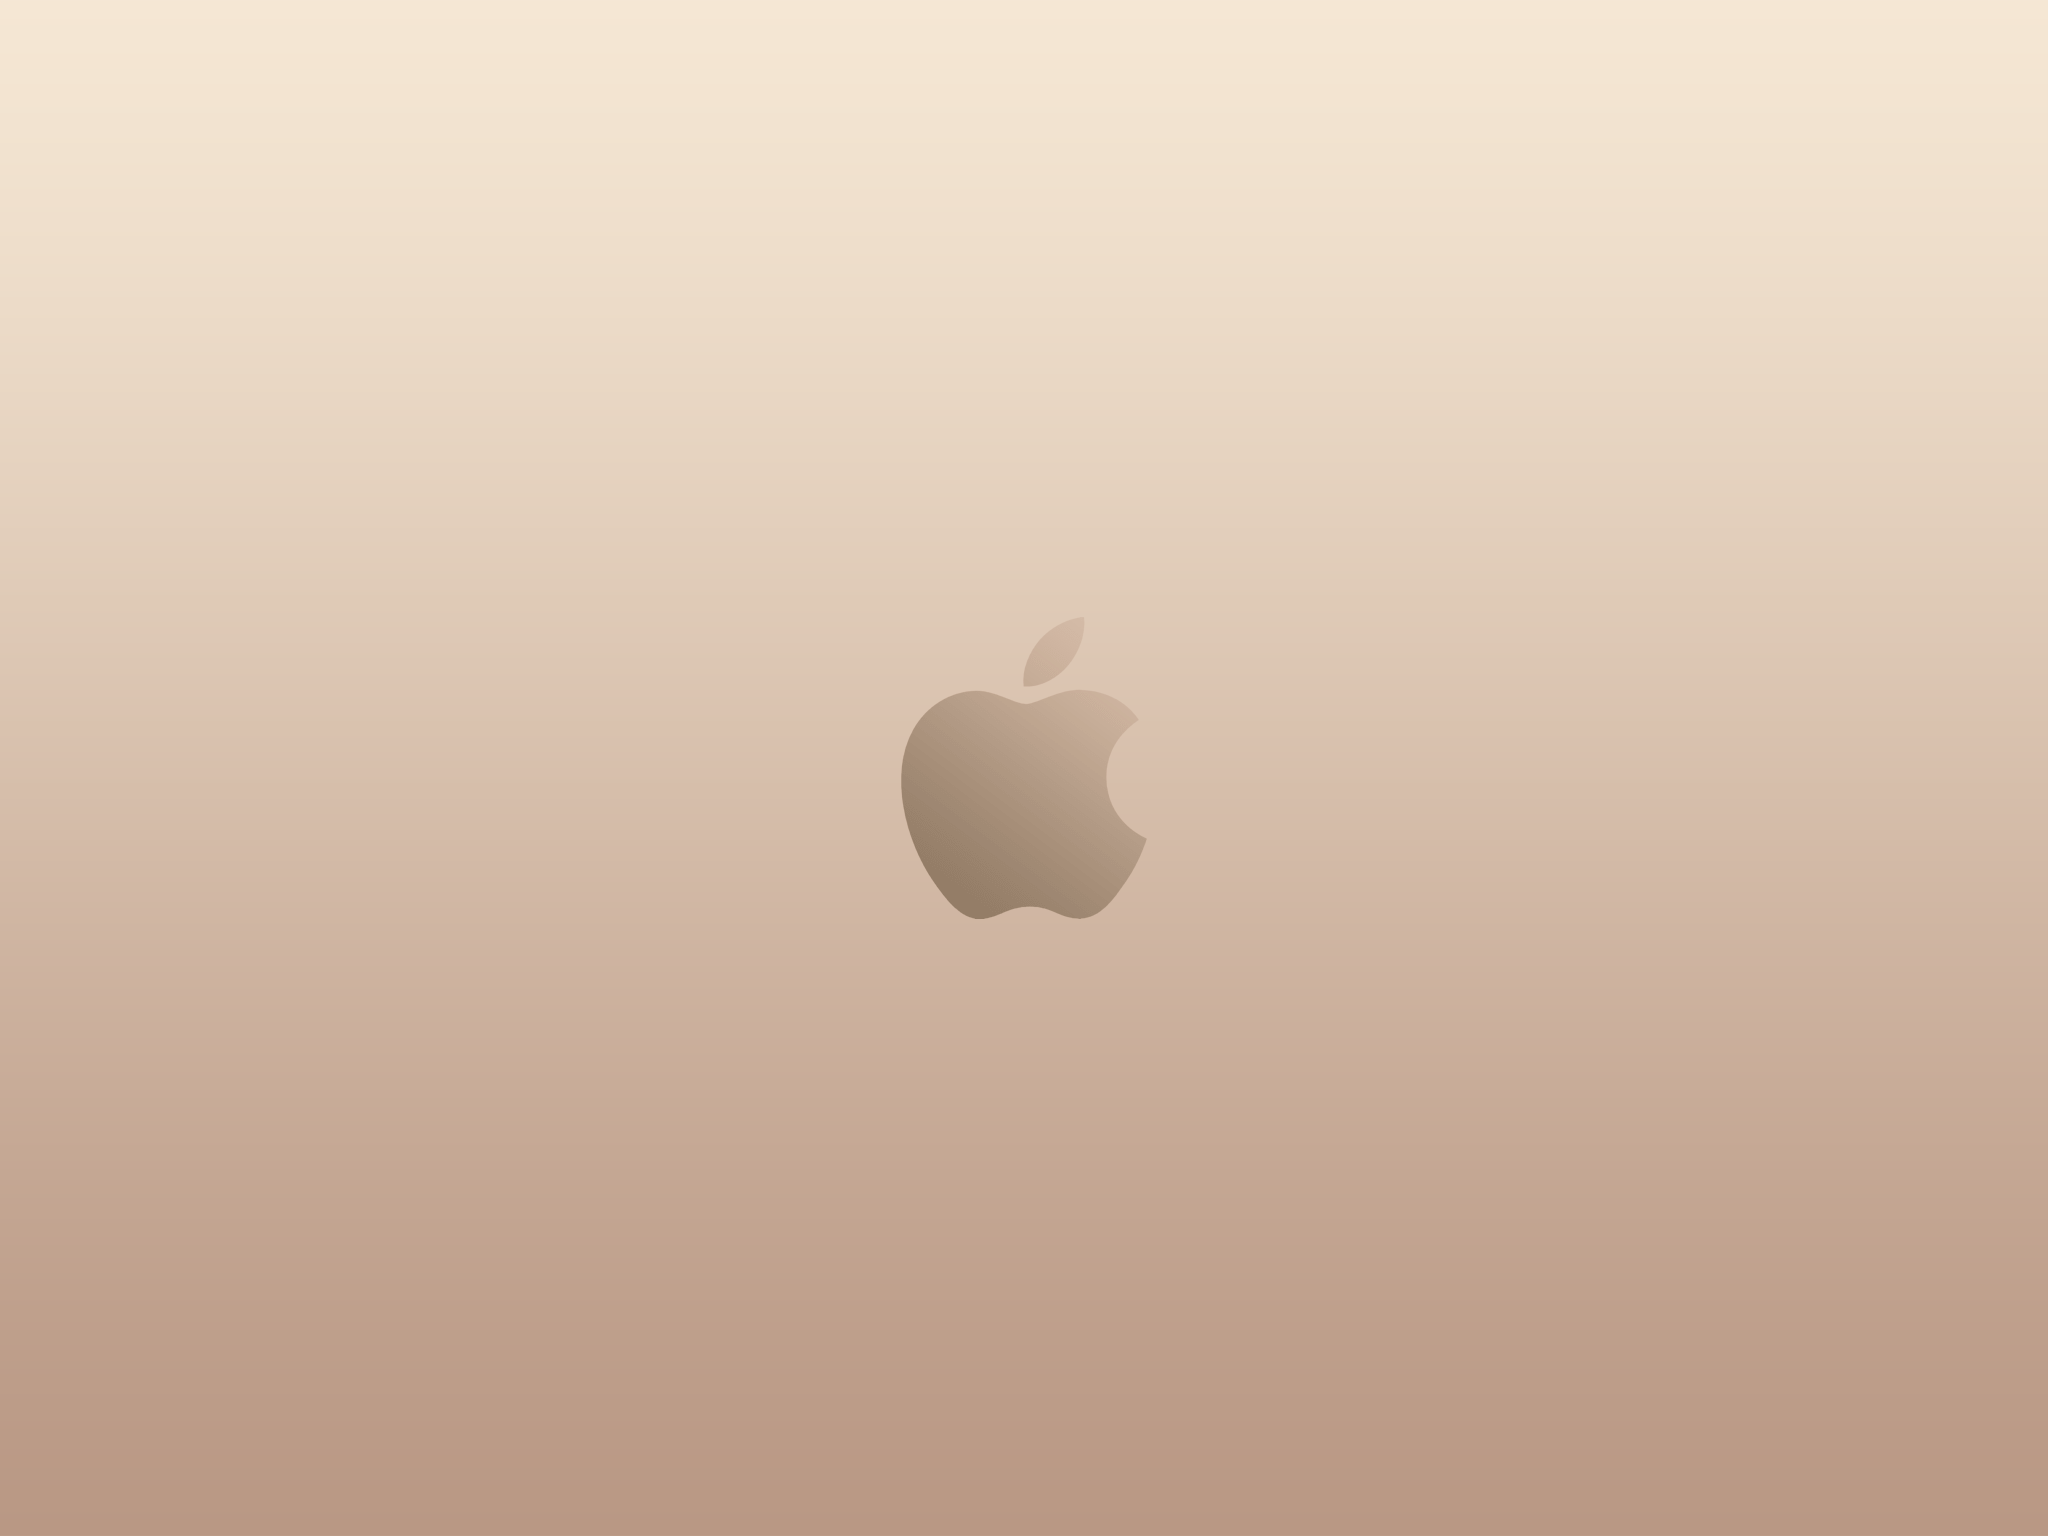 Unduh 770+ Wallpaper Iphone Gold Hd Gratis Terbaik